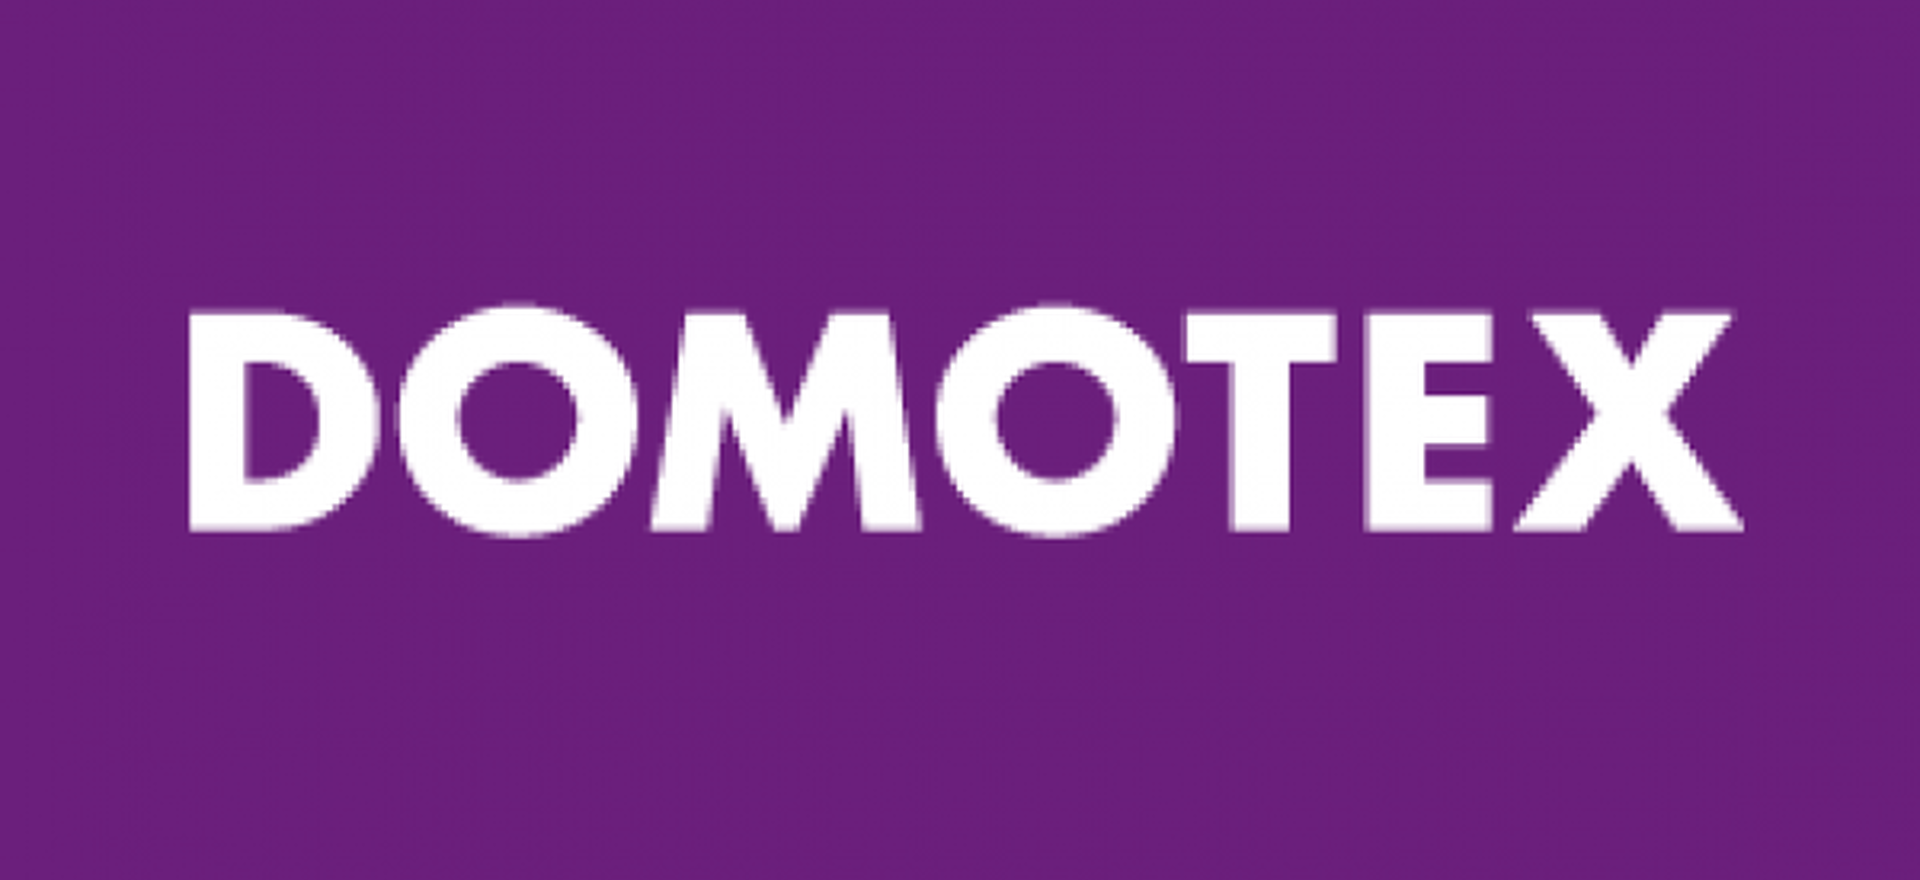 Domotex Hannover 2019